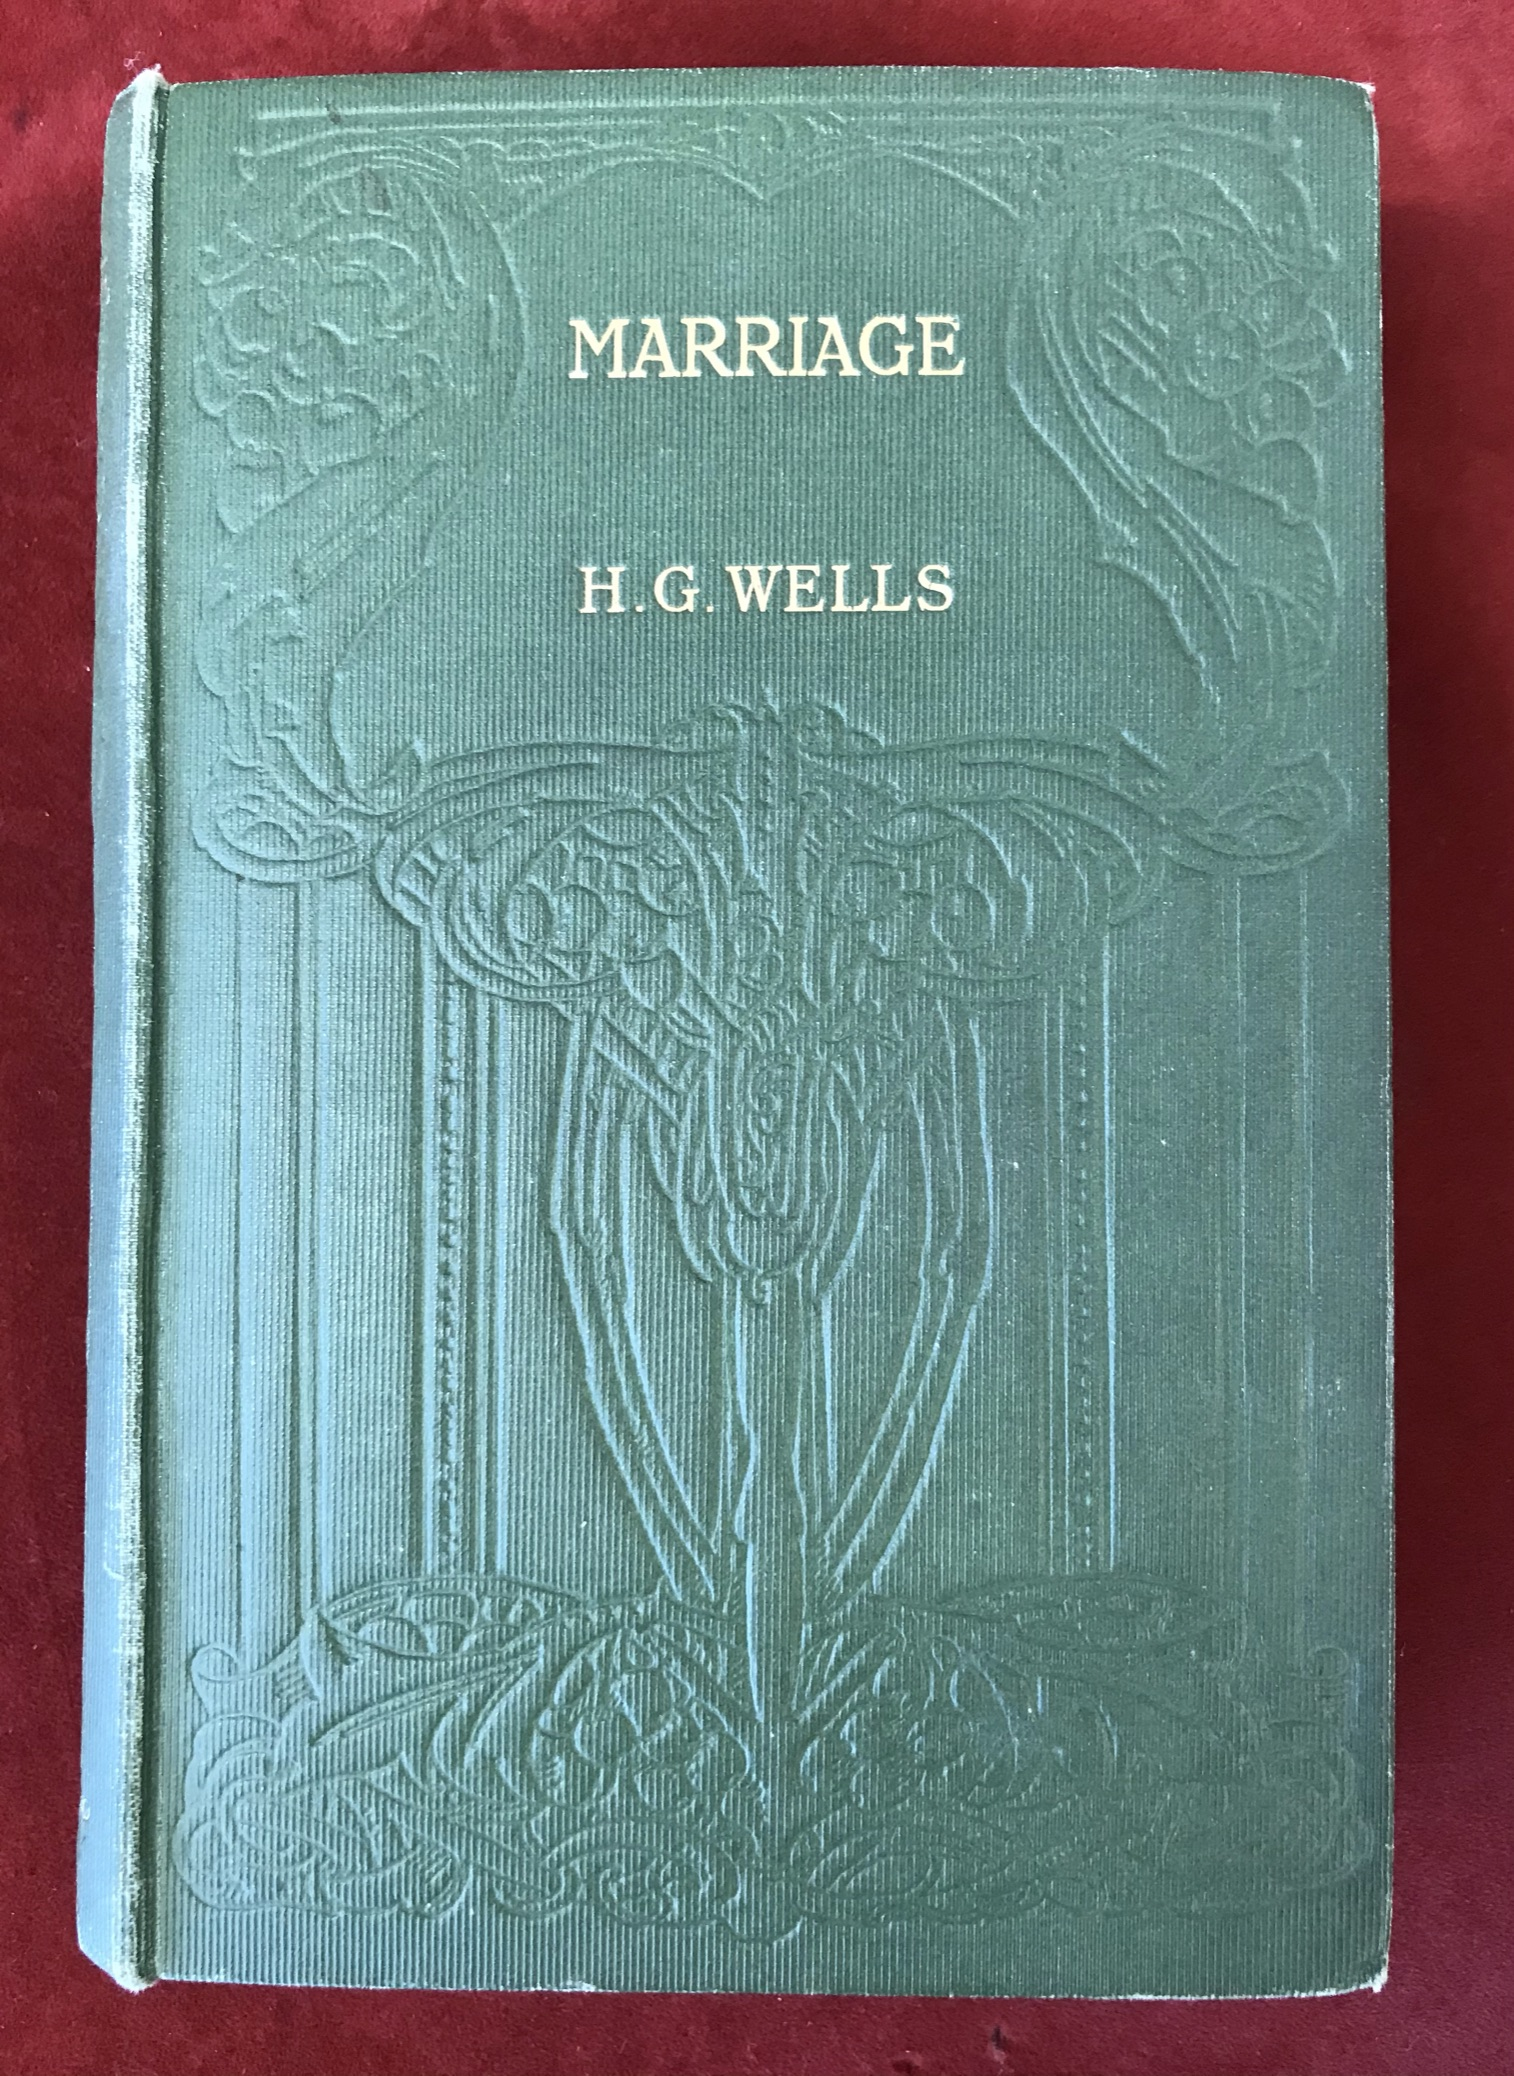 MarriageFirst edition, 1912